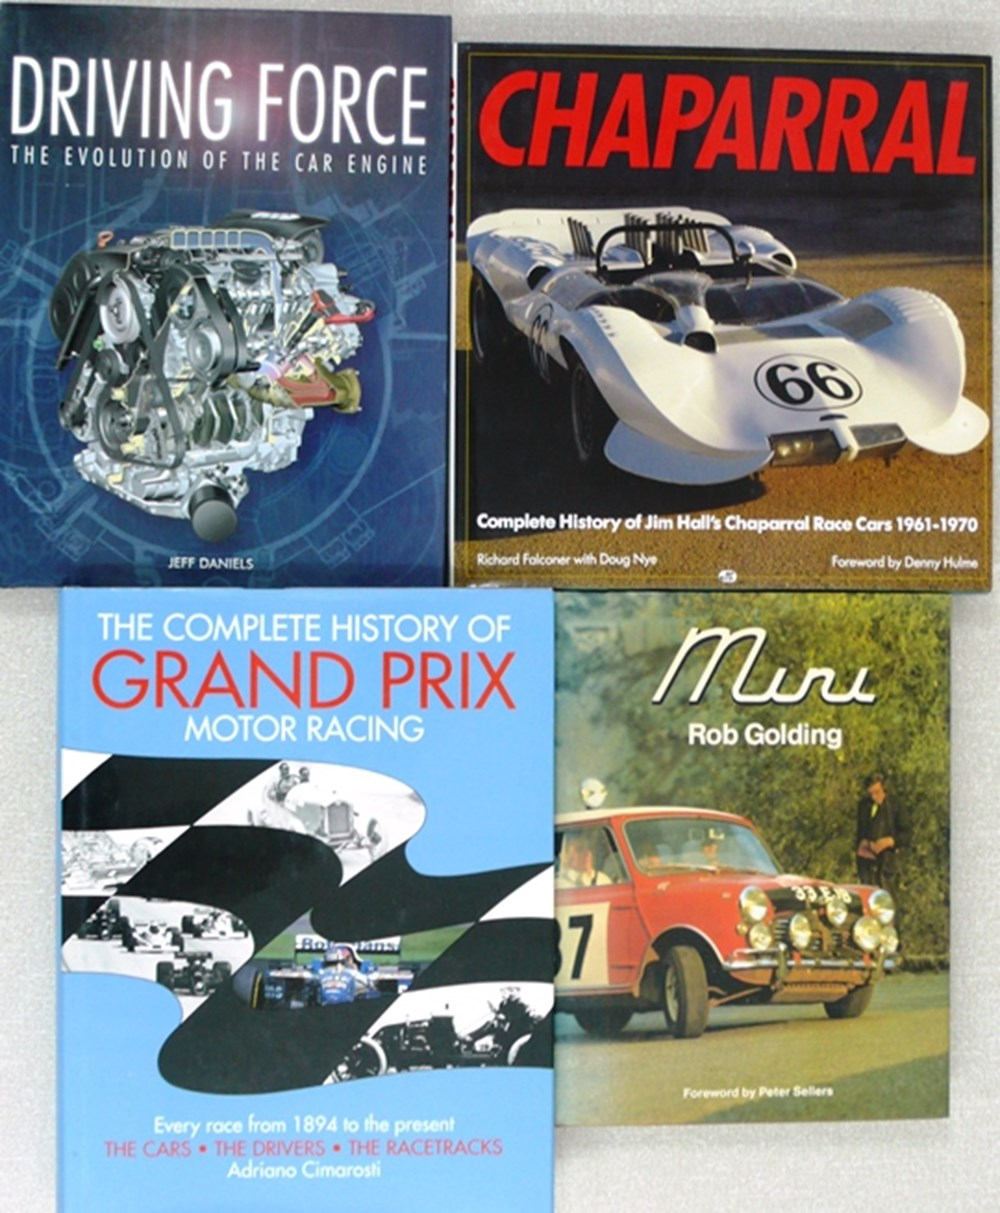 Lot 113 - motorsport books